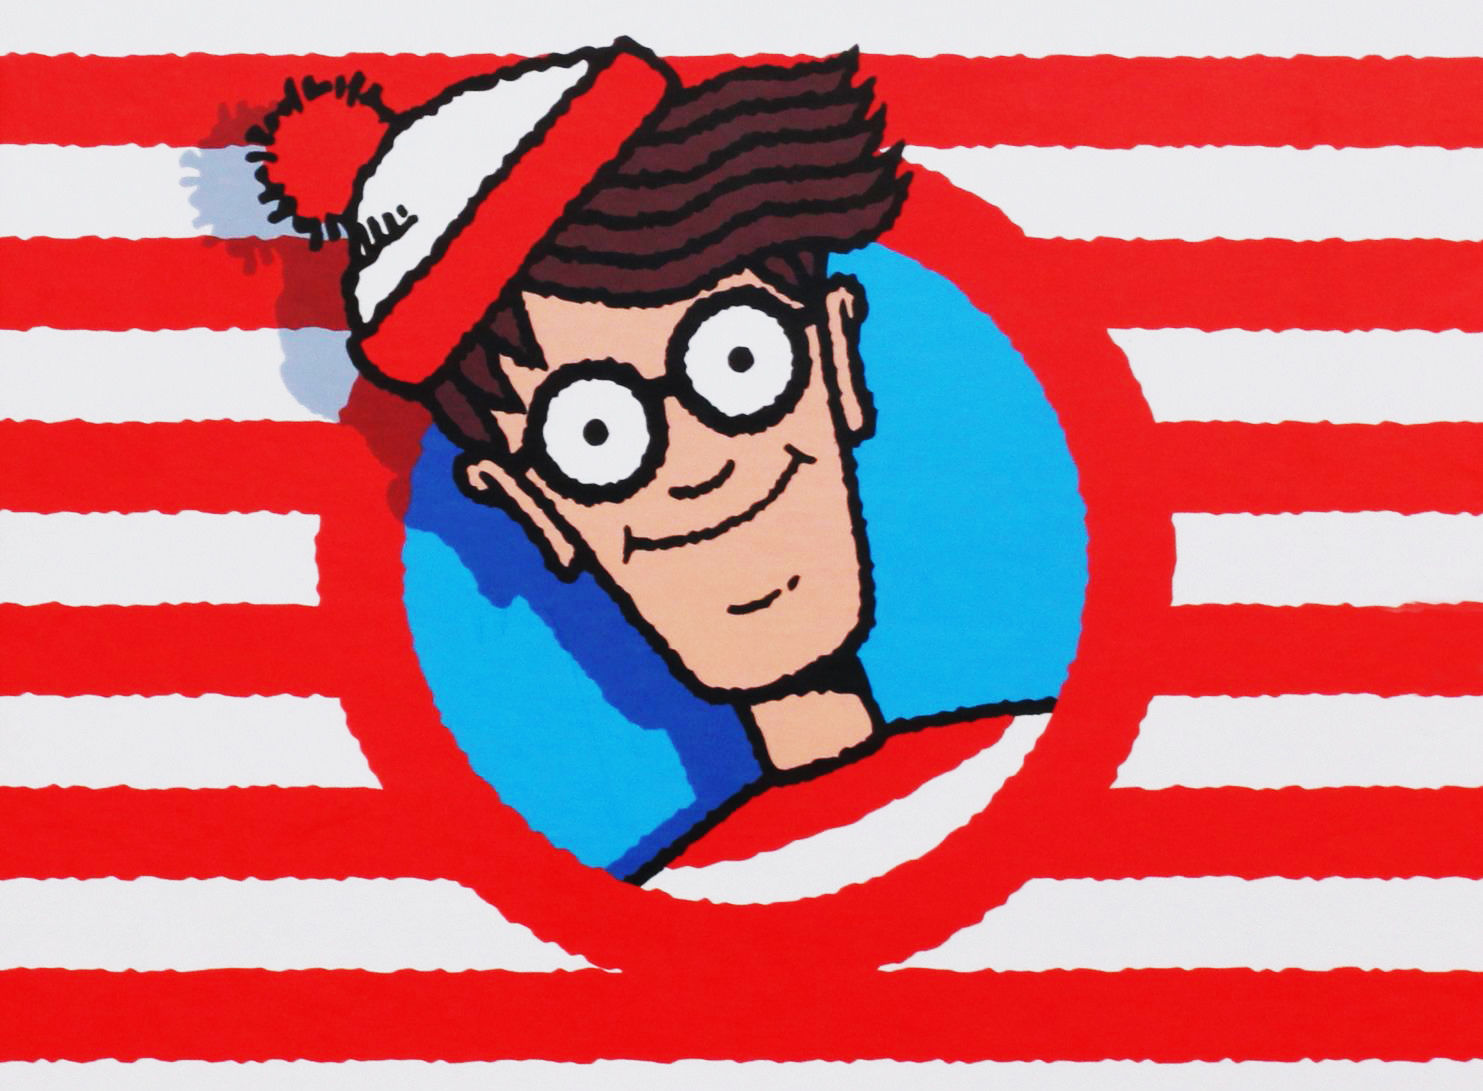 My Fun Project With OpenCV - Finding Waldo Game